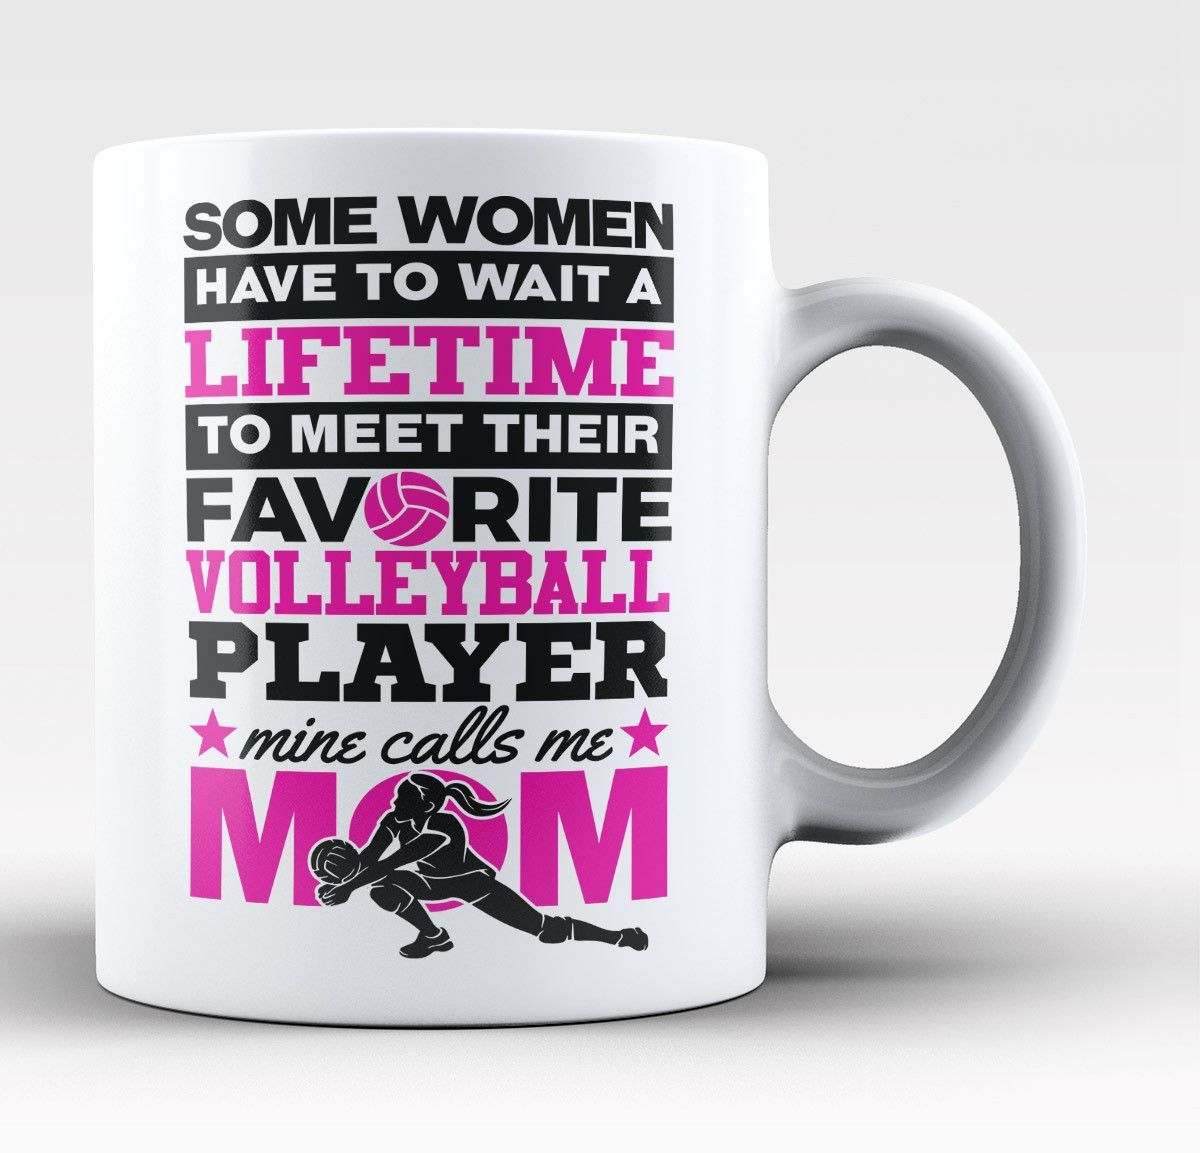 Favorite Volleyball Player Mine Calls Me Nickname Personalized Mug Water Polo Water Polo Players Call My Mom